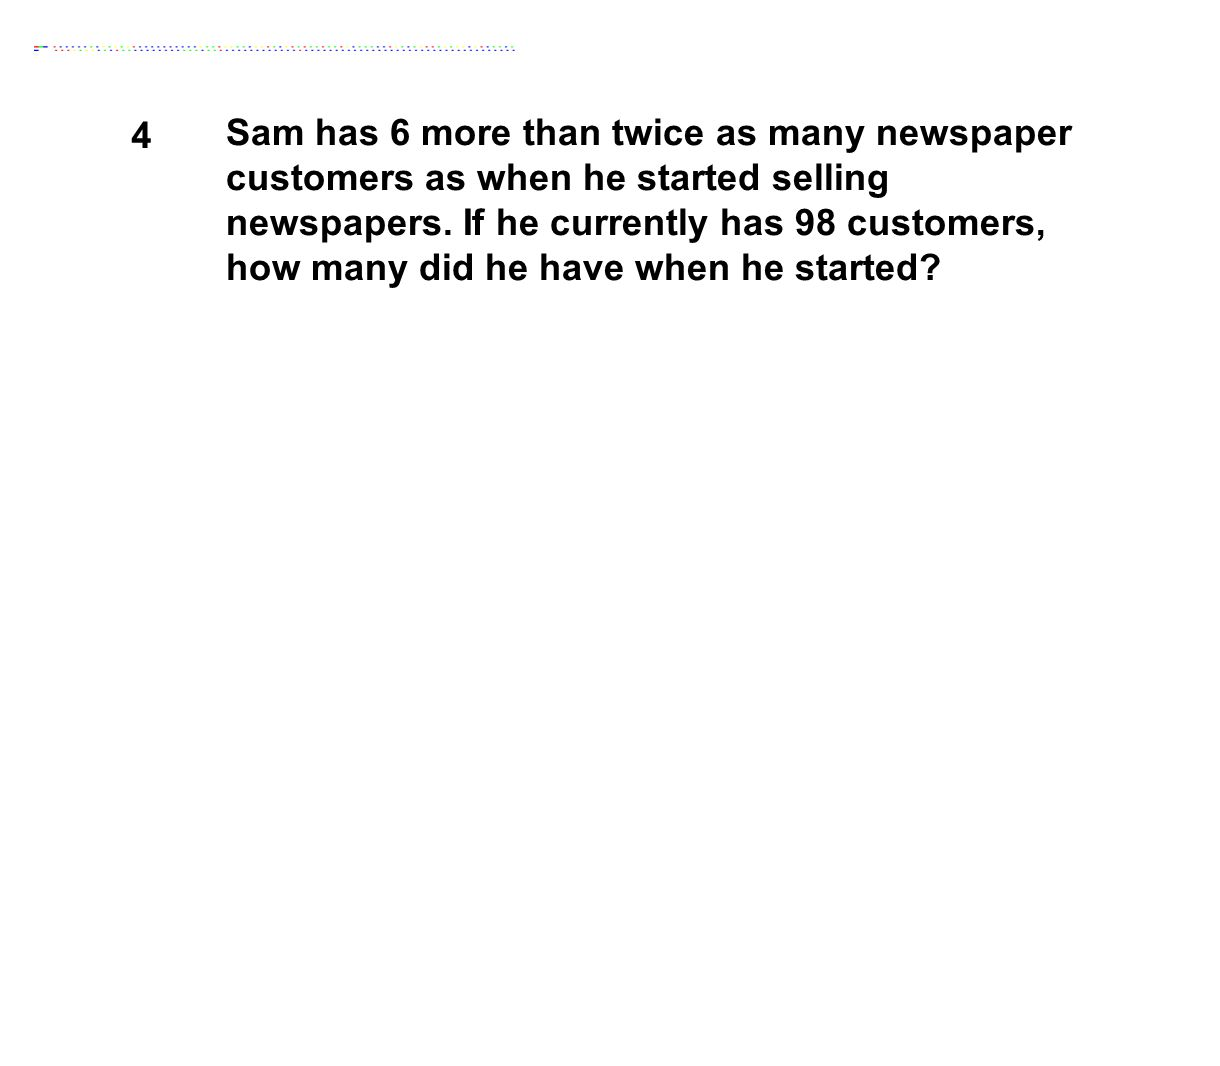 4 Sam has 6 more than twice as many newspaper customers as when he started selling newspapers. If he currently has 98 customers, how many did he have